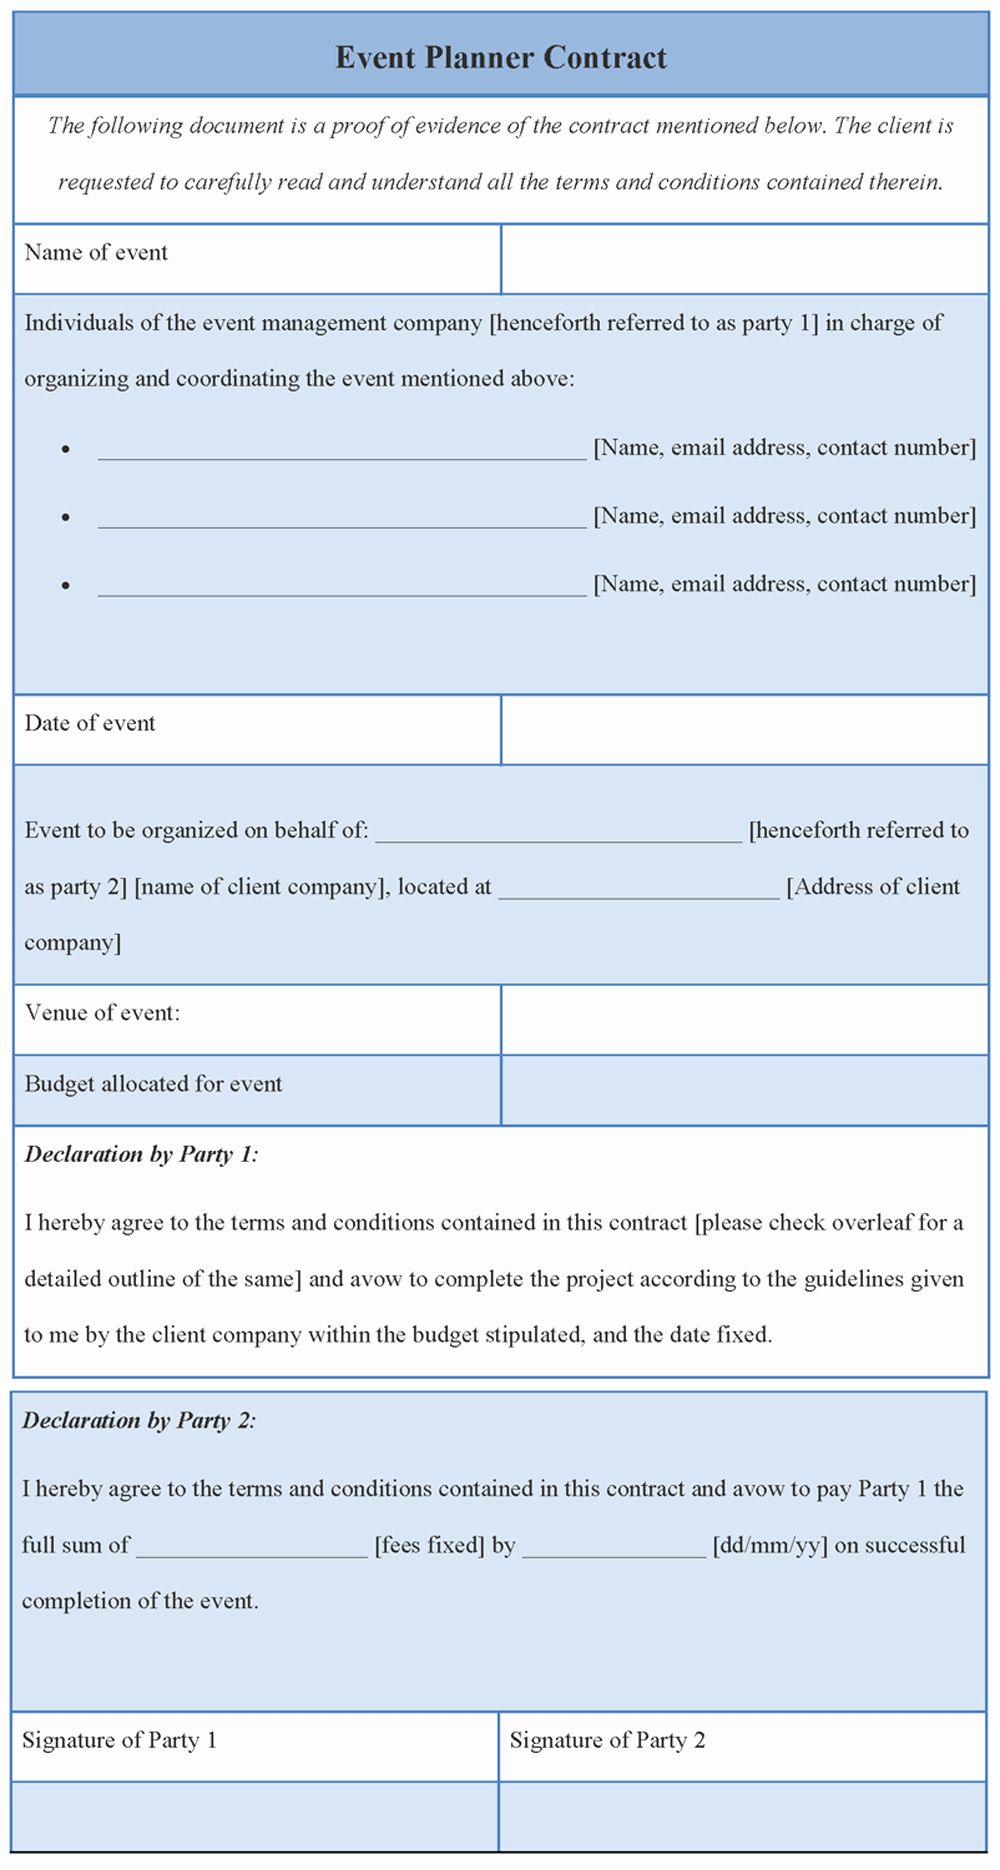 Event Planning Contract Template Best Of Contract Template for event Planner format Of event